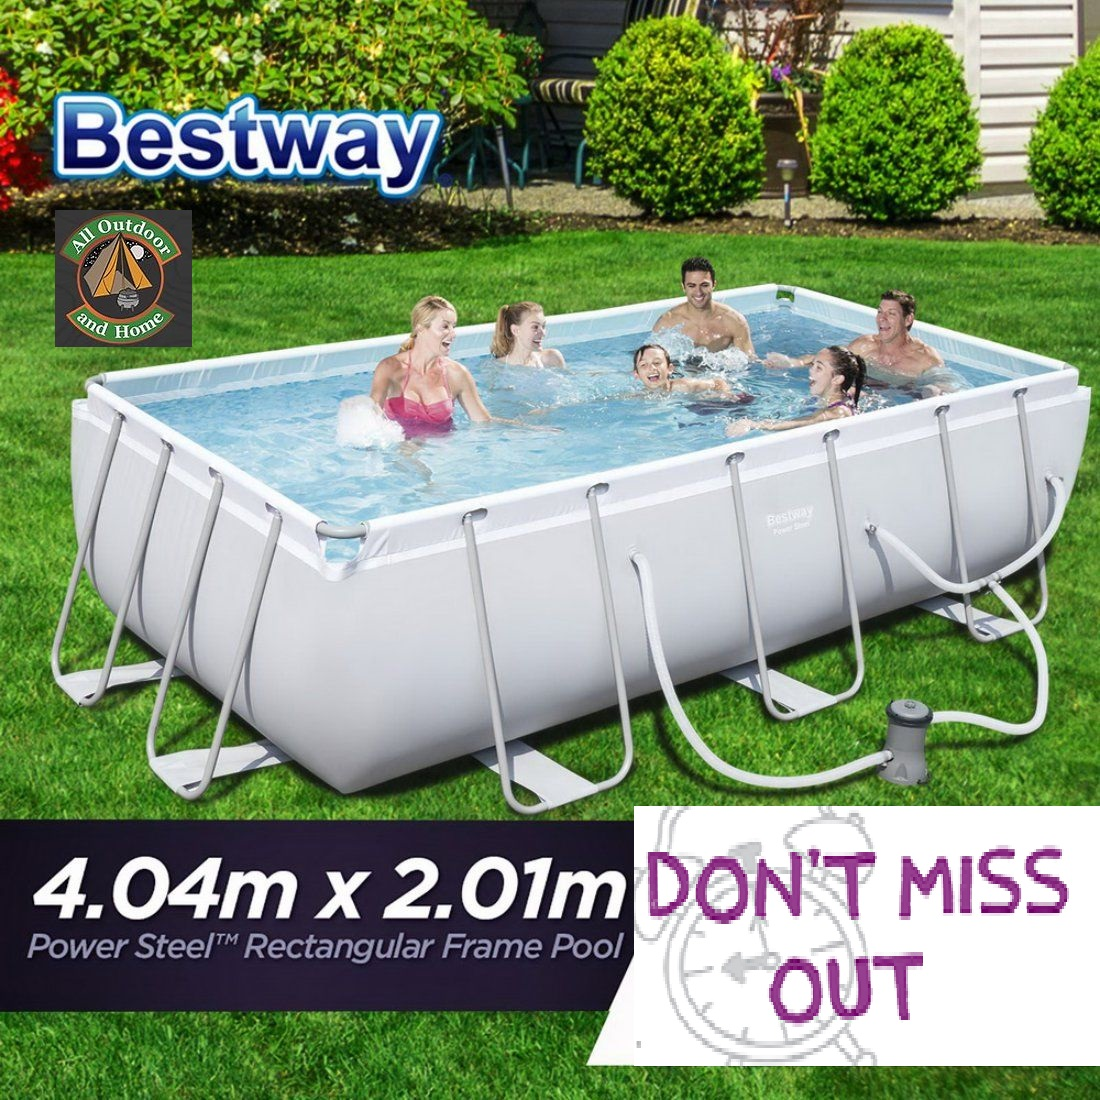 new-bestway-power-steel&trade-rectangular-frame-swimming-pool-set-404m-x-201m-stock-available-early-september